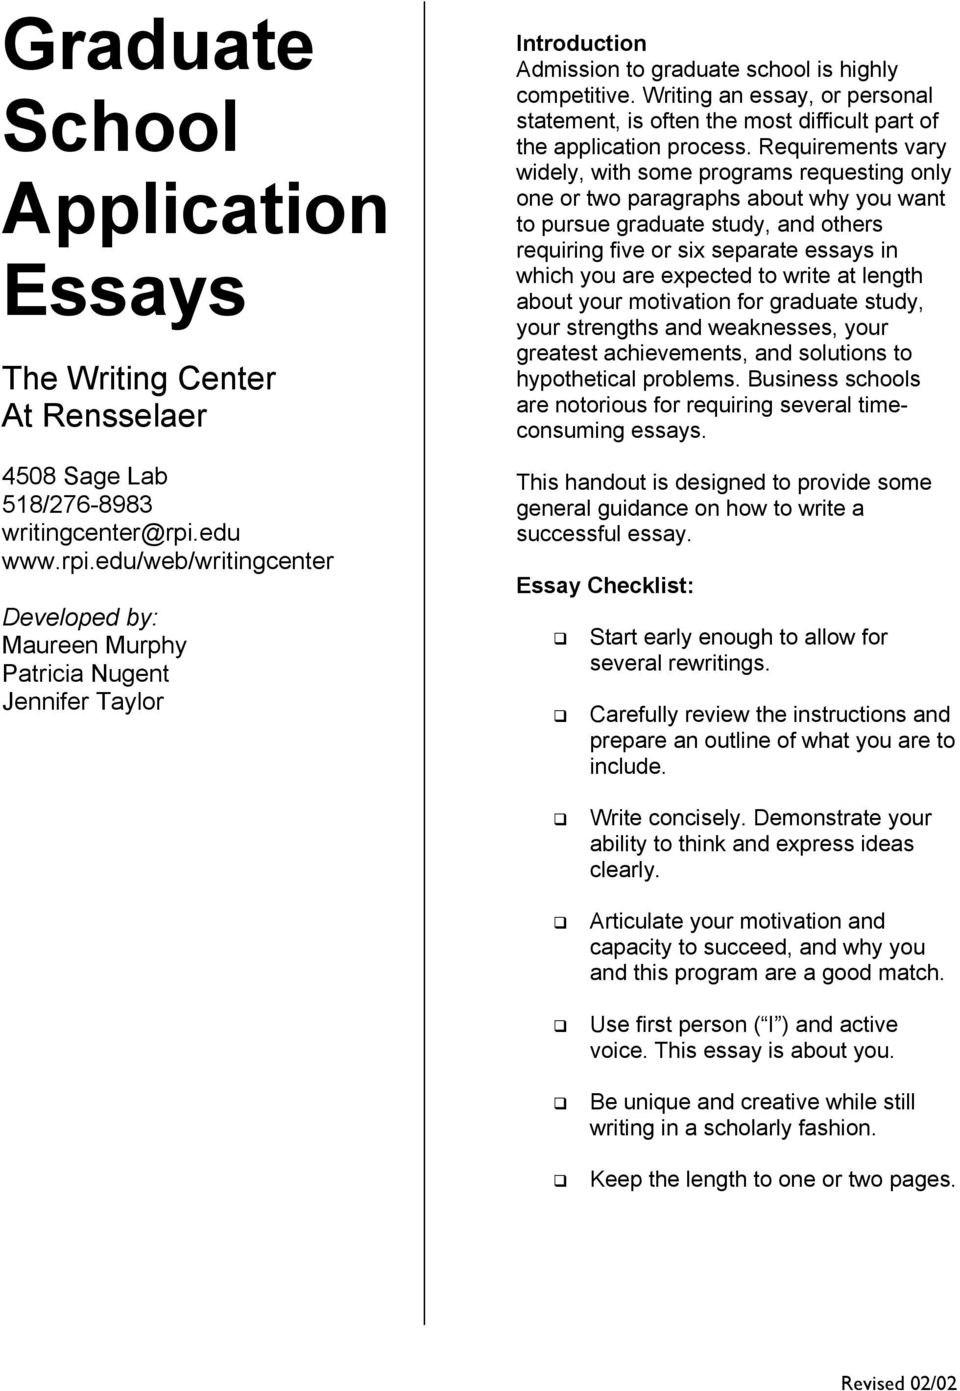 Writing an essay, or personal statement, is often the most difficult part of the application process.